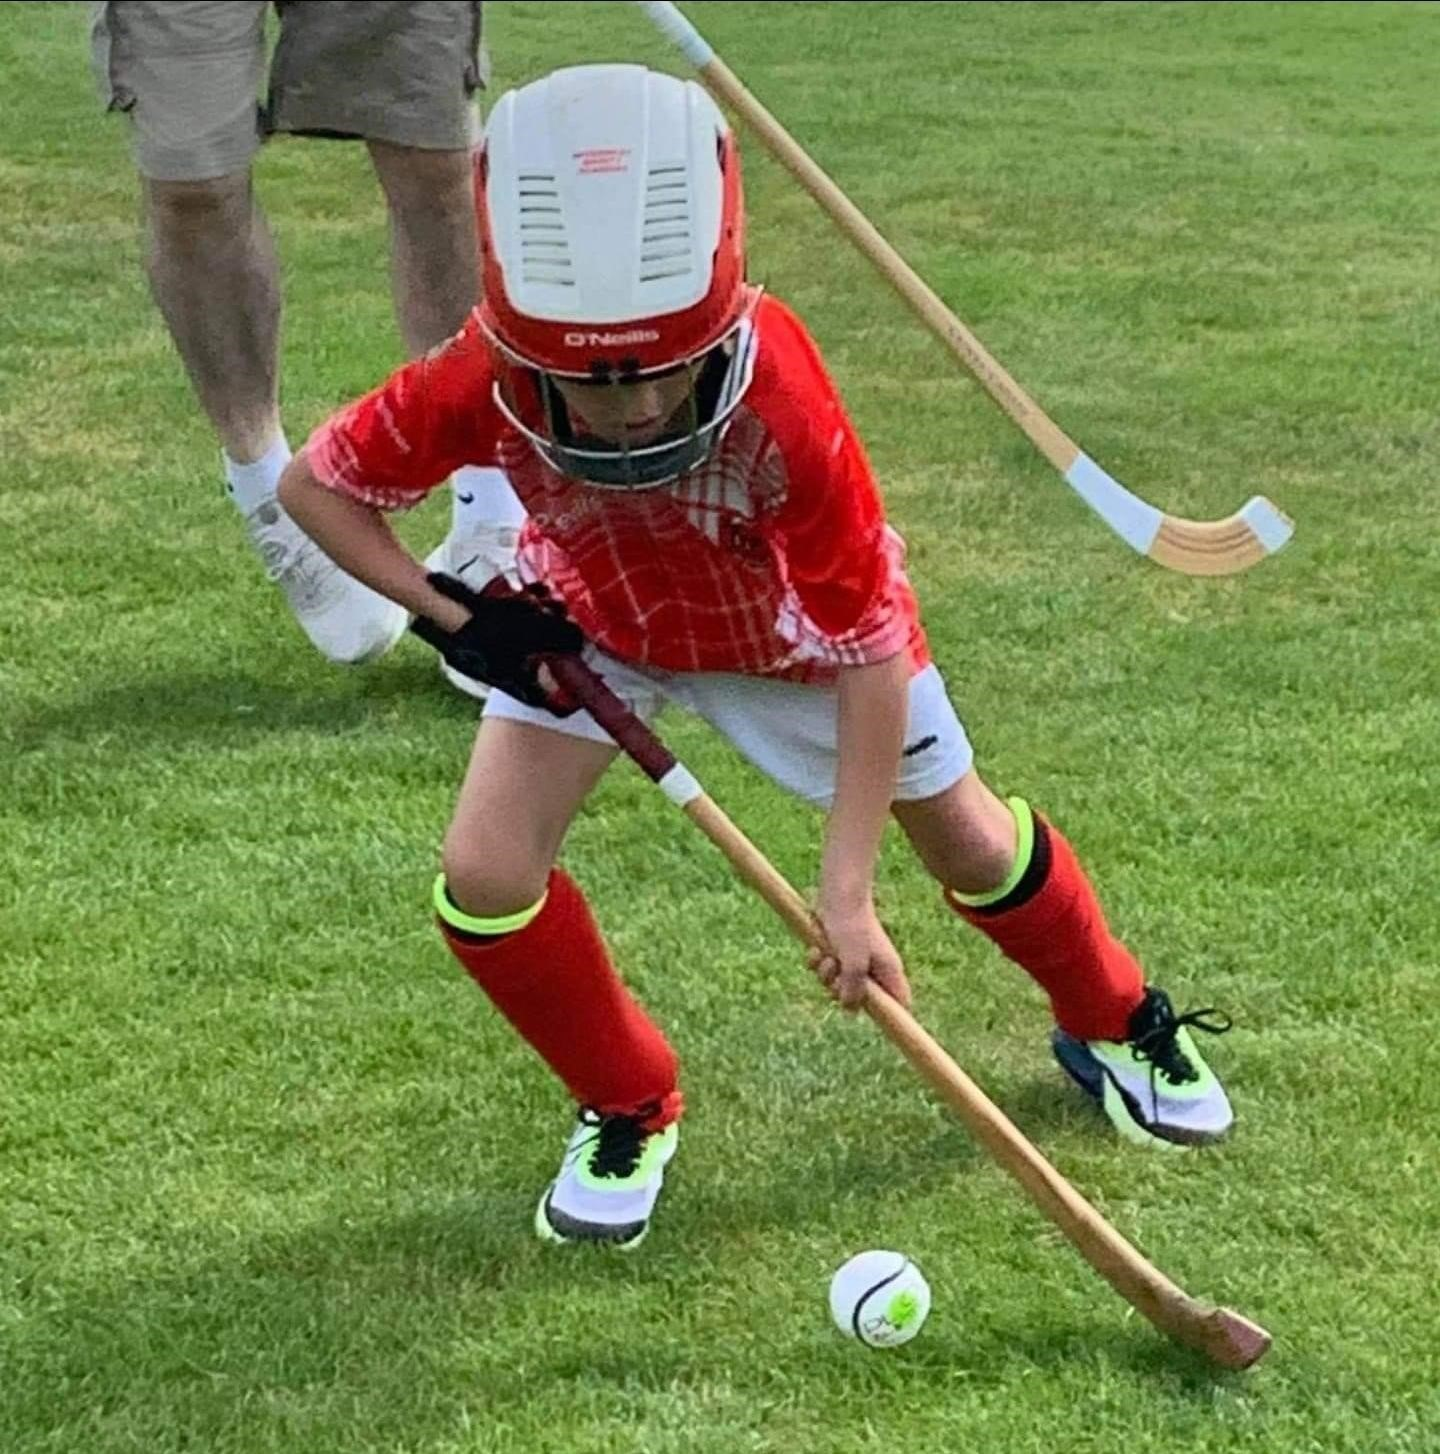 Inverness Shinty Club